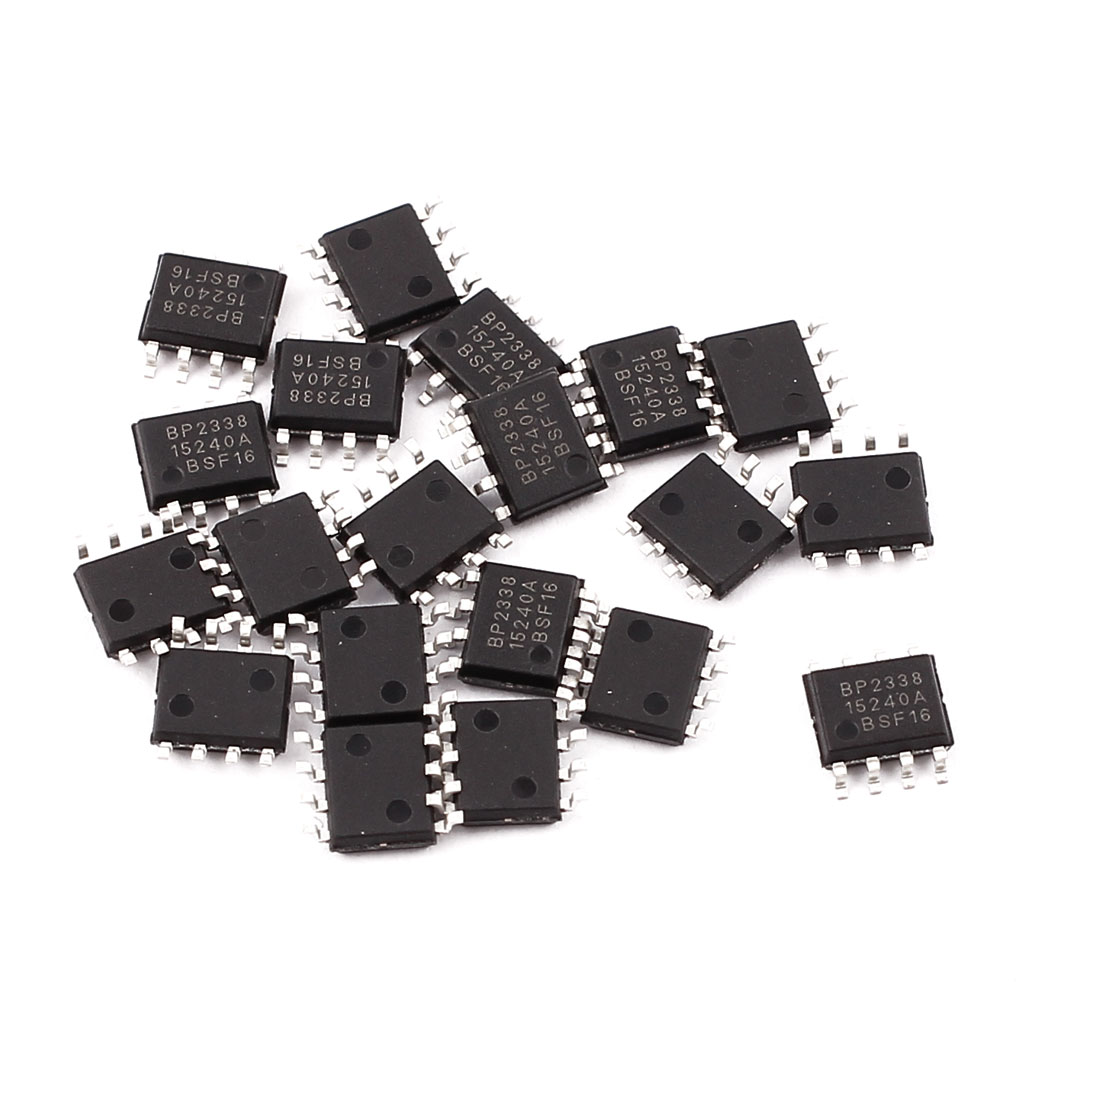 20Pcs BP2338 SOP-8 SMD SMT Type PCB Surface Mount LED Driver Circuit Module Integrated Circuit IC Chip